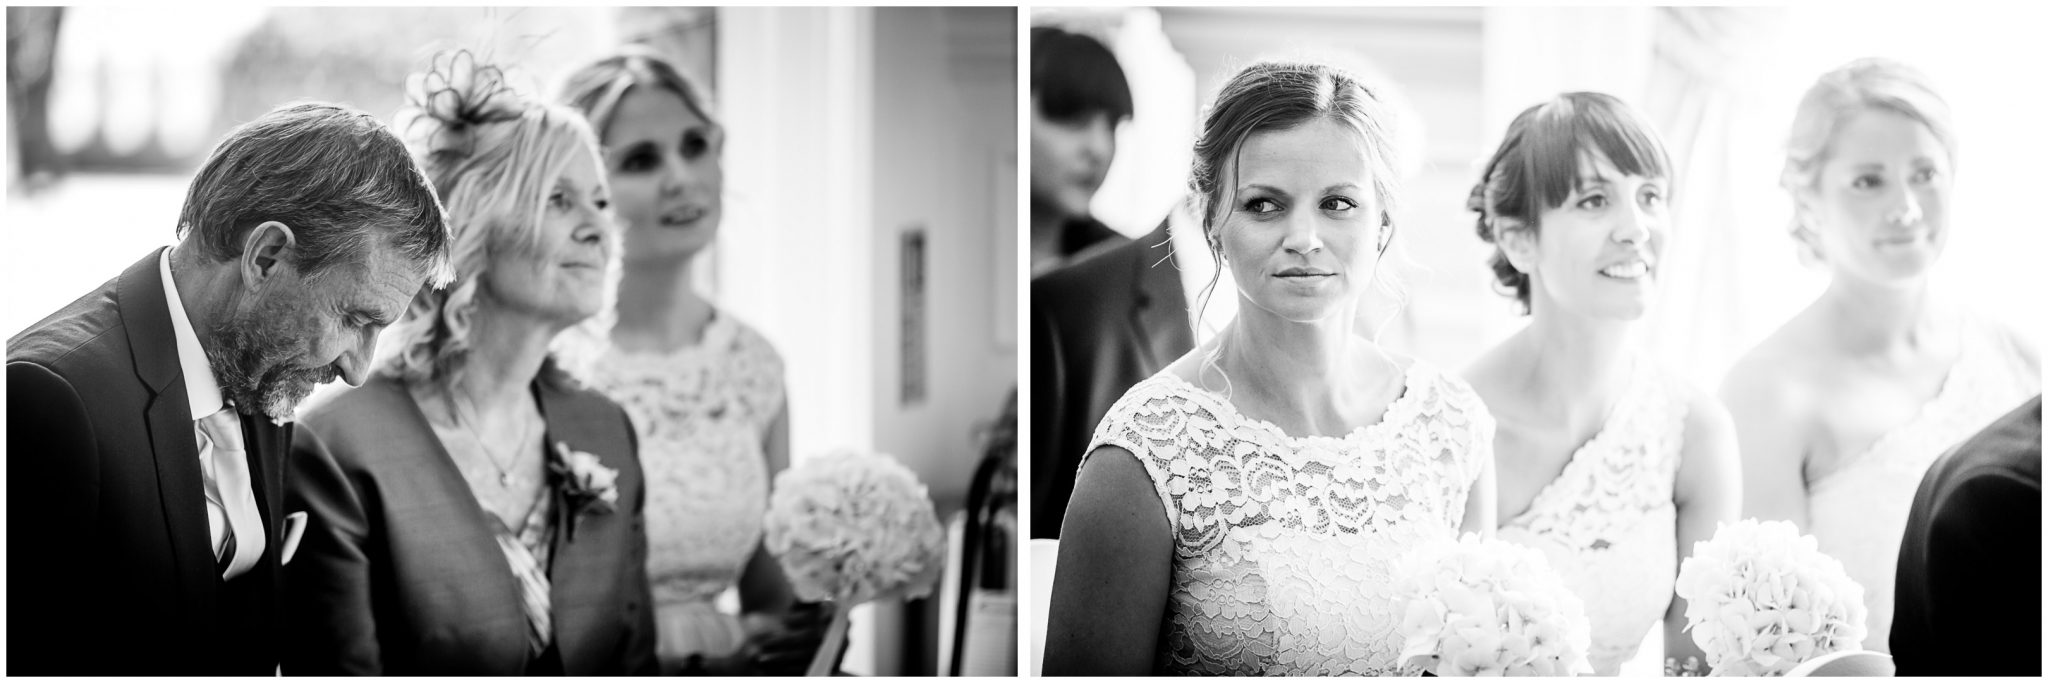 Oakley Hall wedding photography candid photos during marriage service